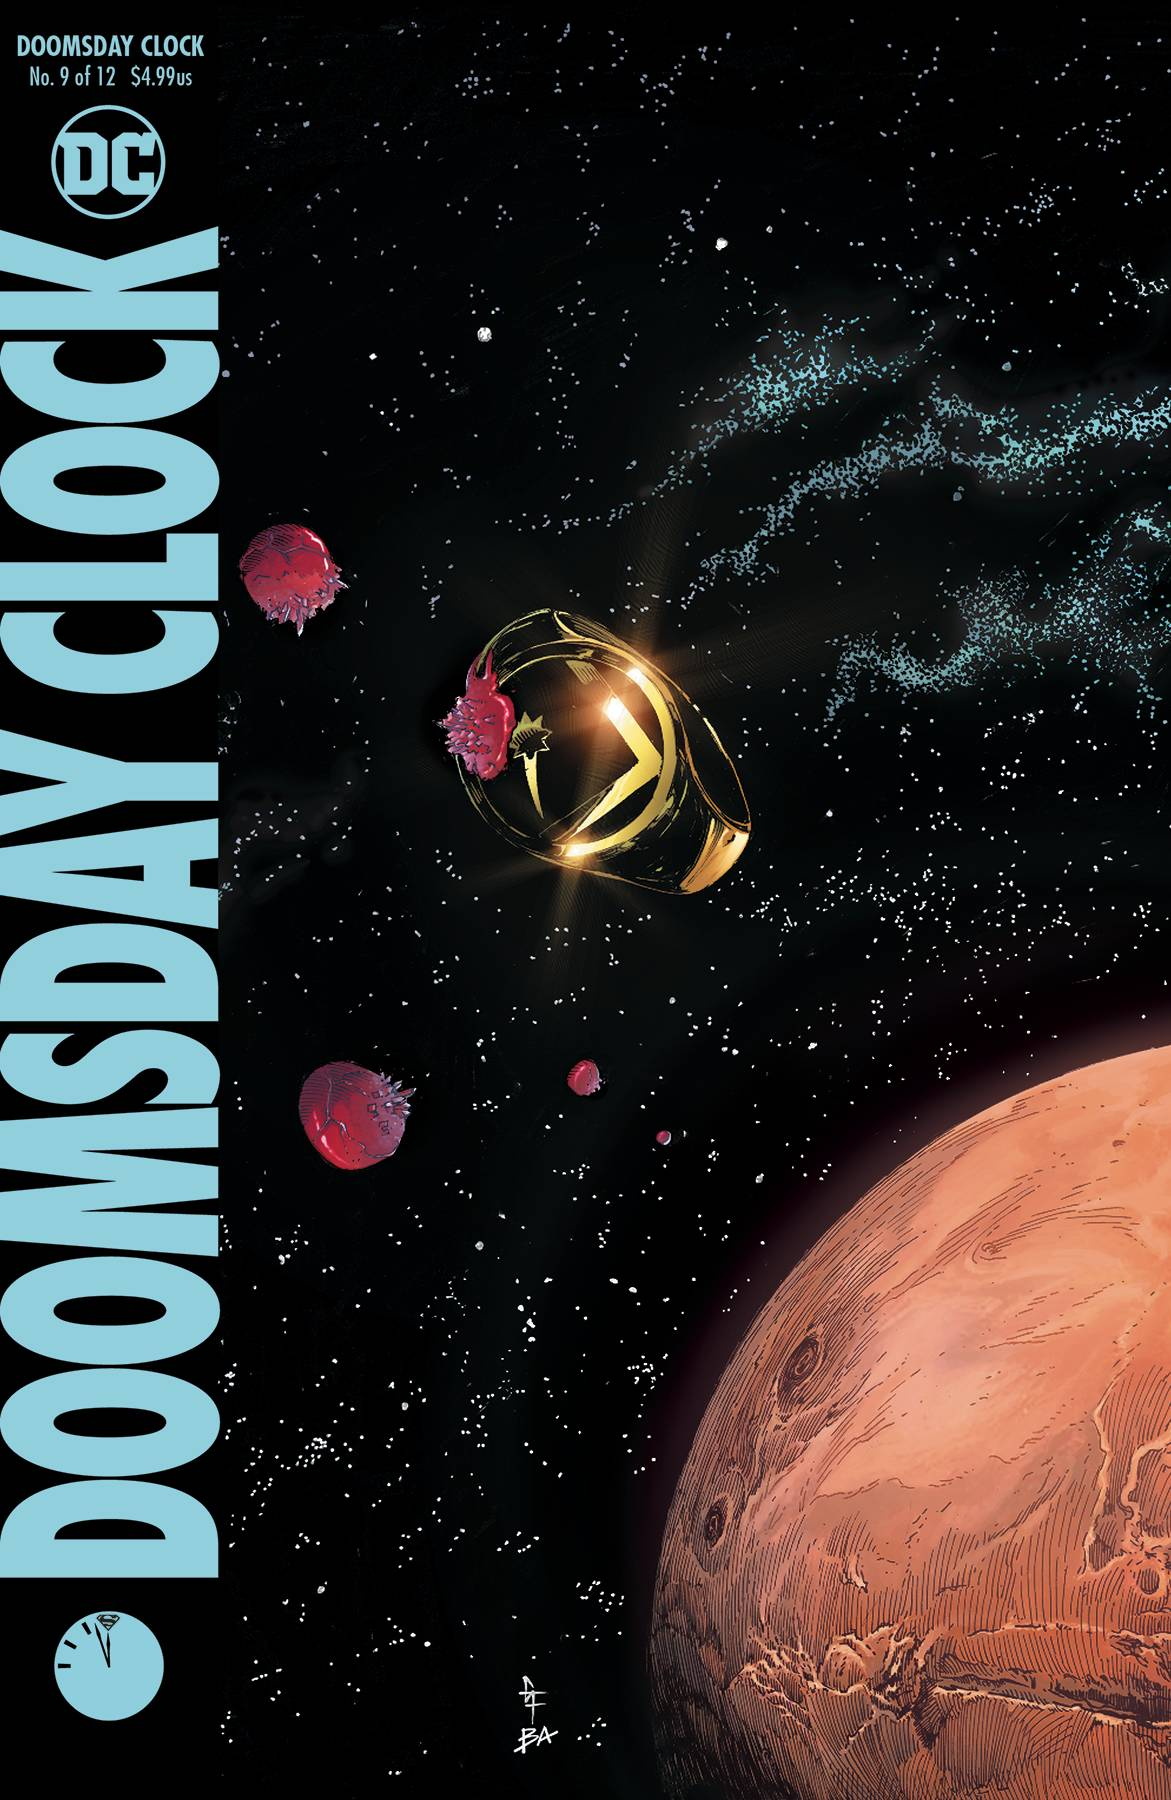 DOOMSDAY CLOCK #9 (OF 12)